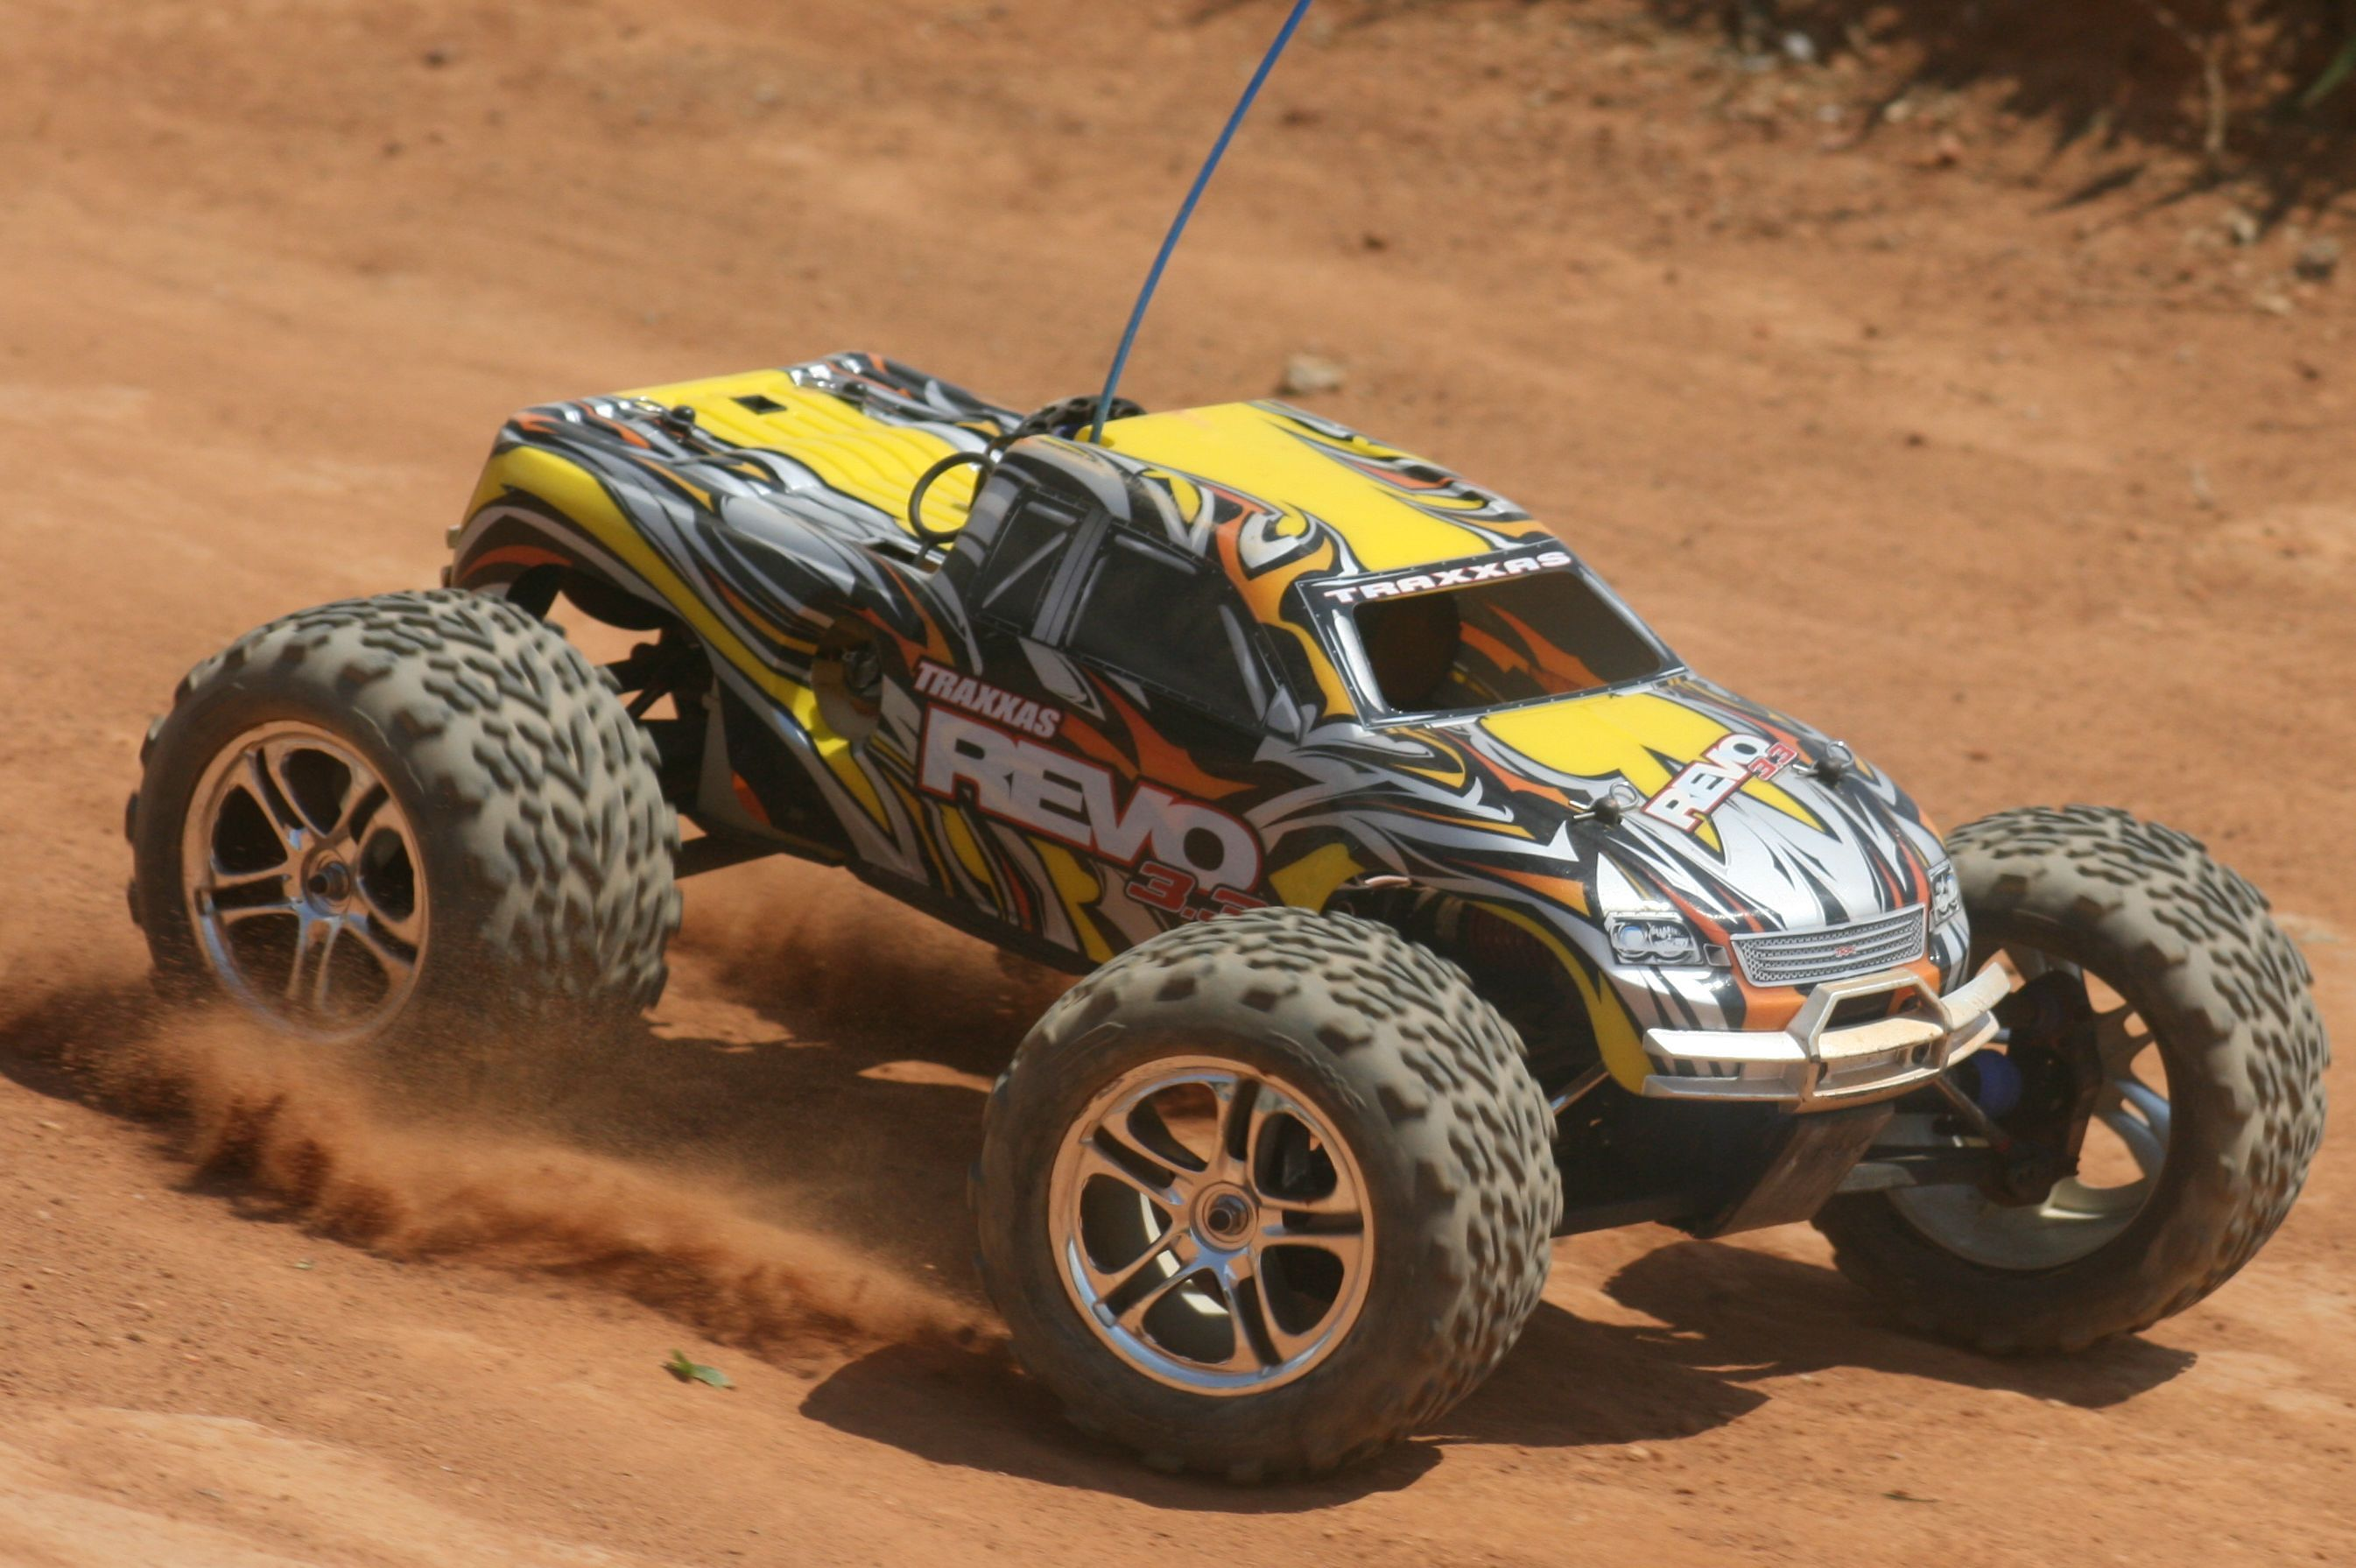 f Road RC Trucks I would really say that this is tops on my list